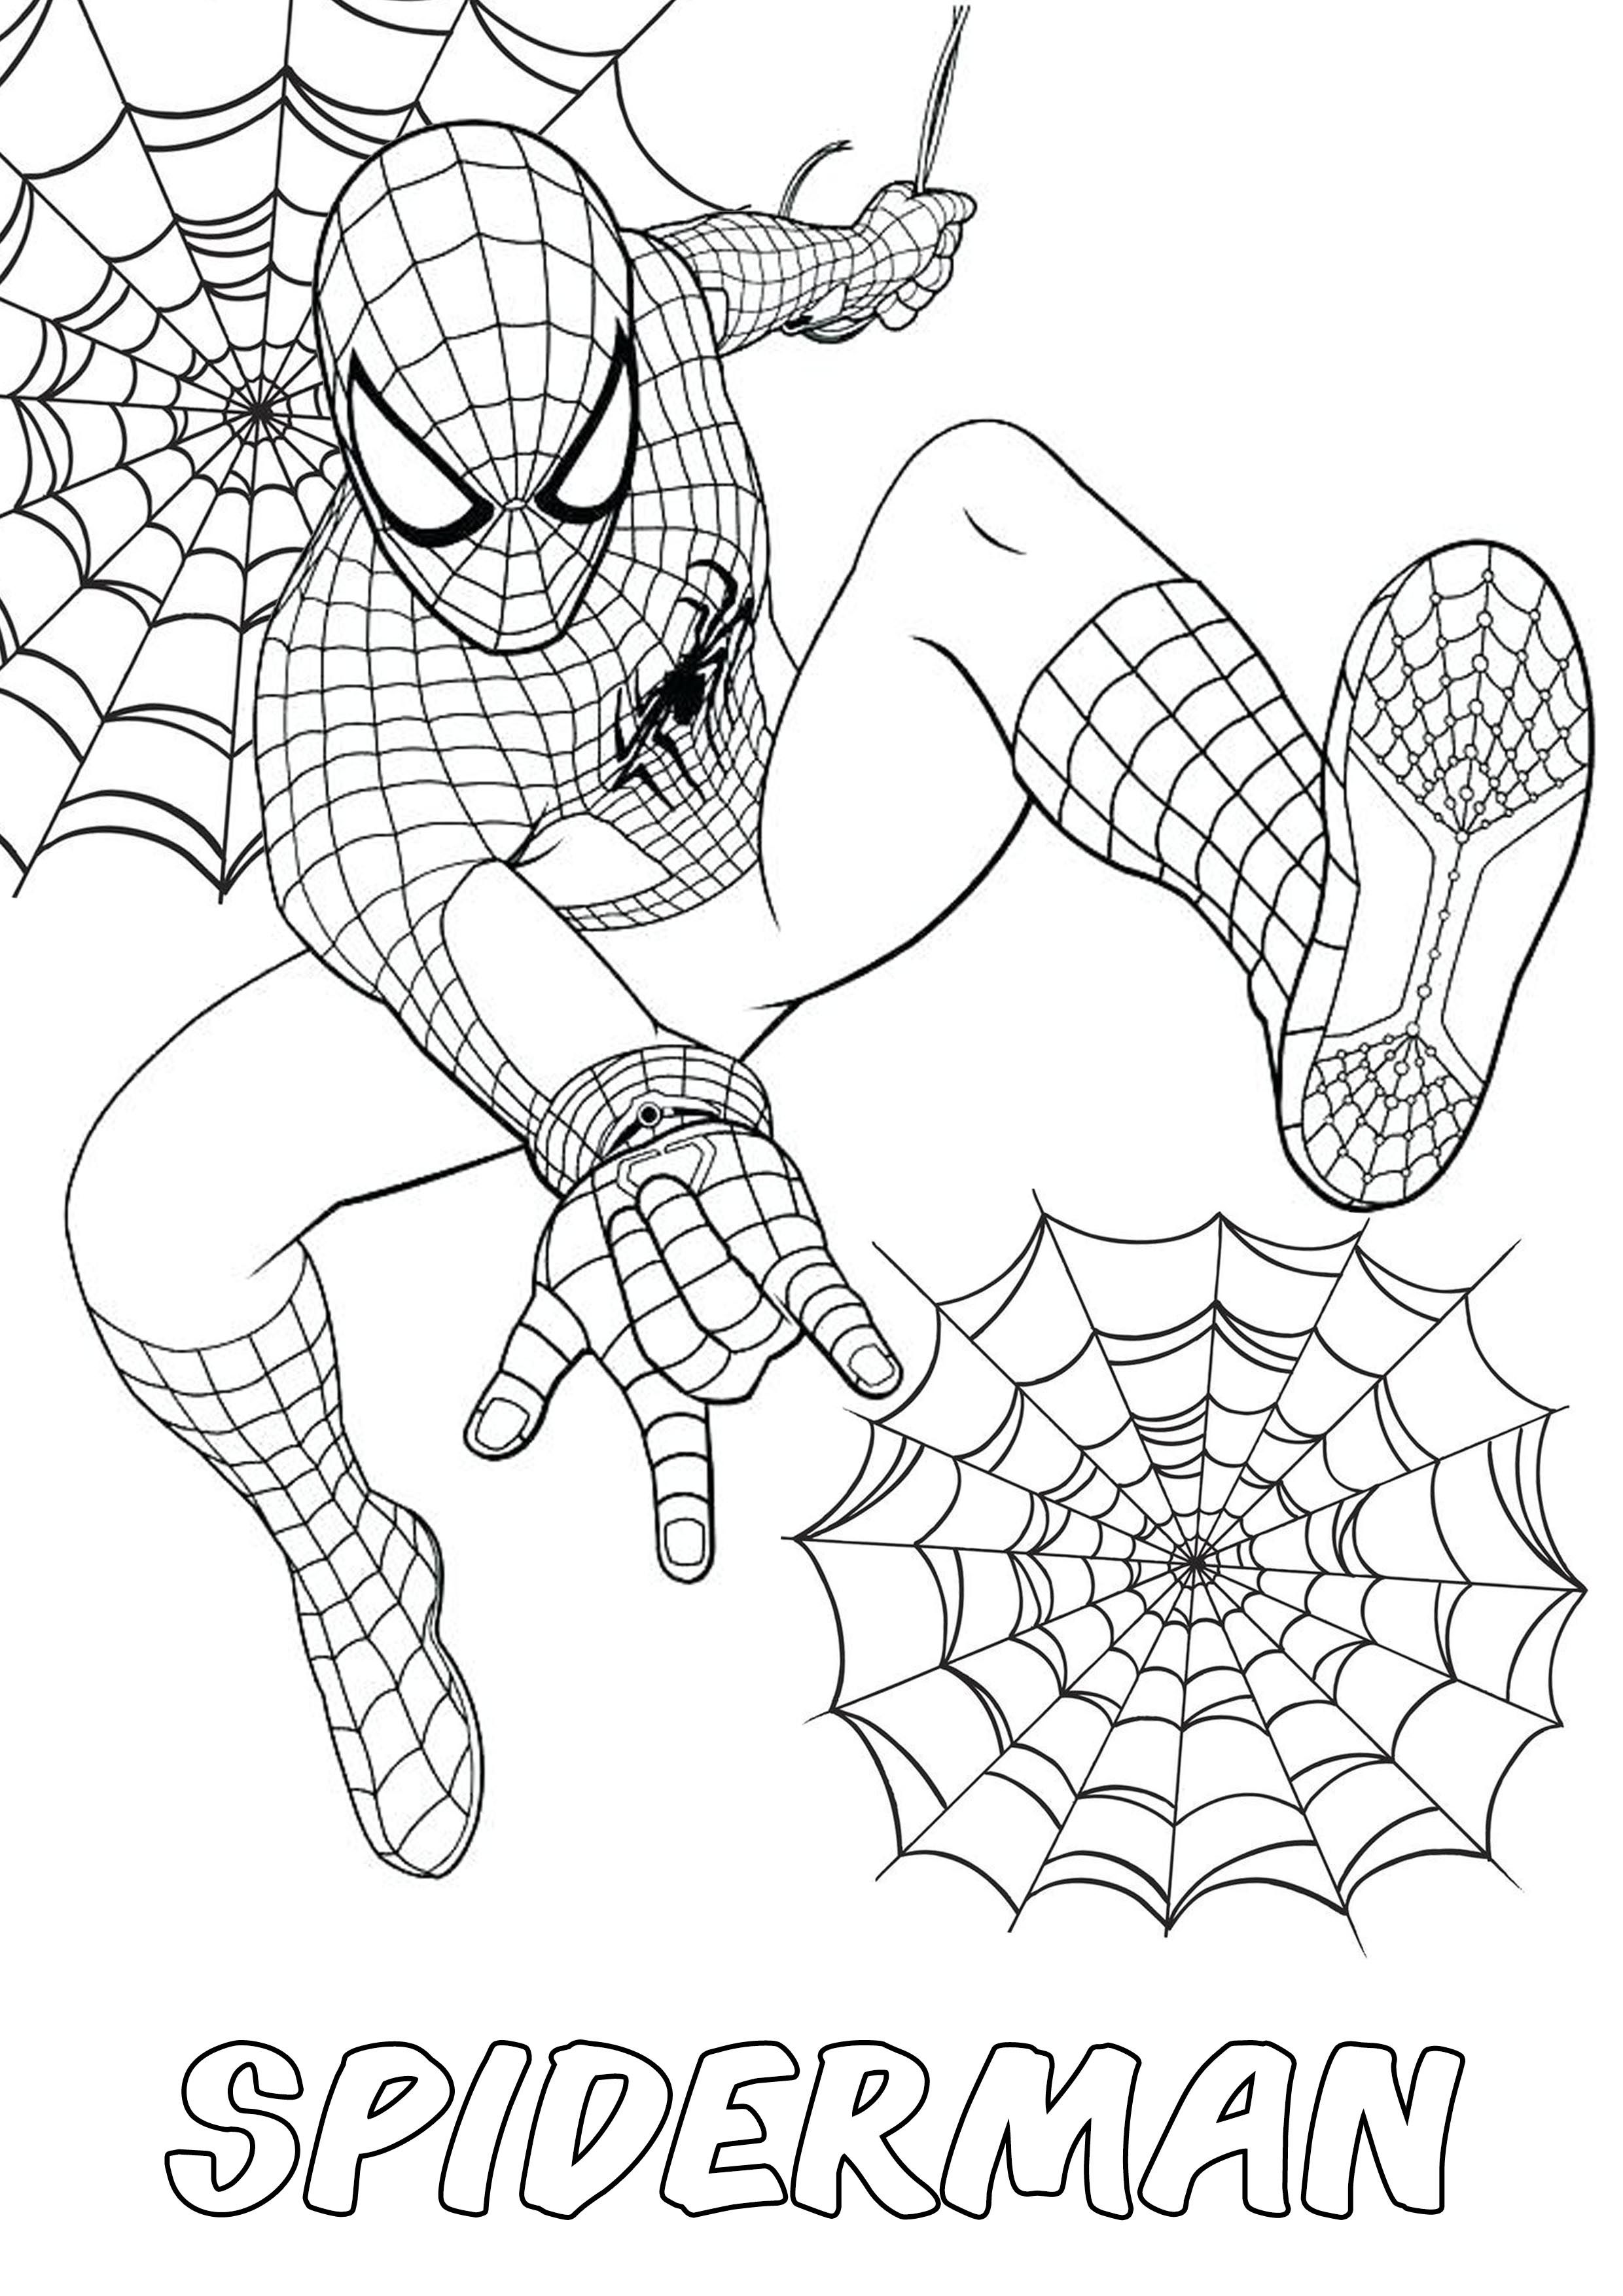 Spiderman Marvel Movies Action Coloring Pages Design Kids Marvel Coloring Coloring Pages Tree Drawing